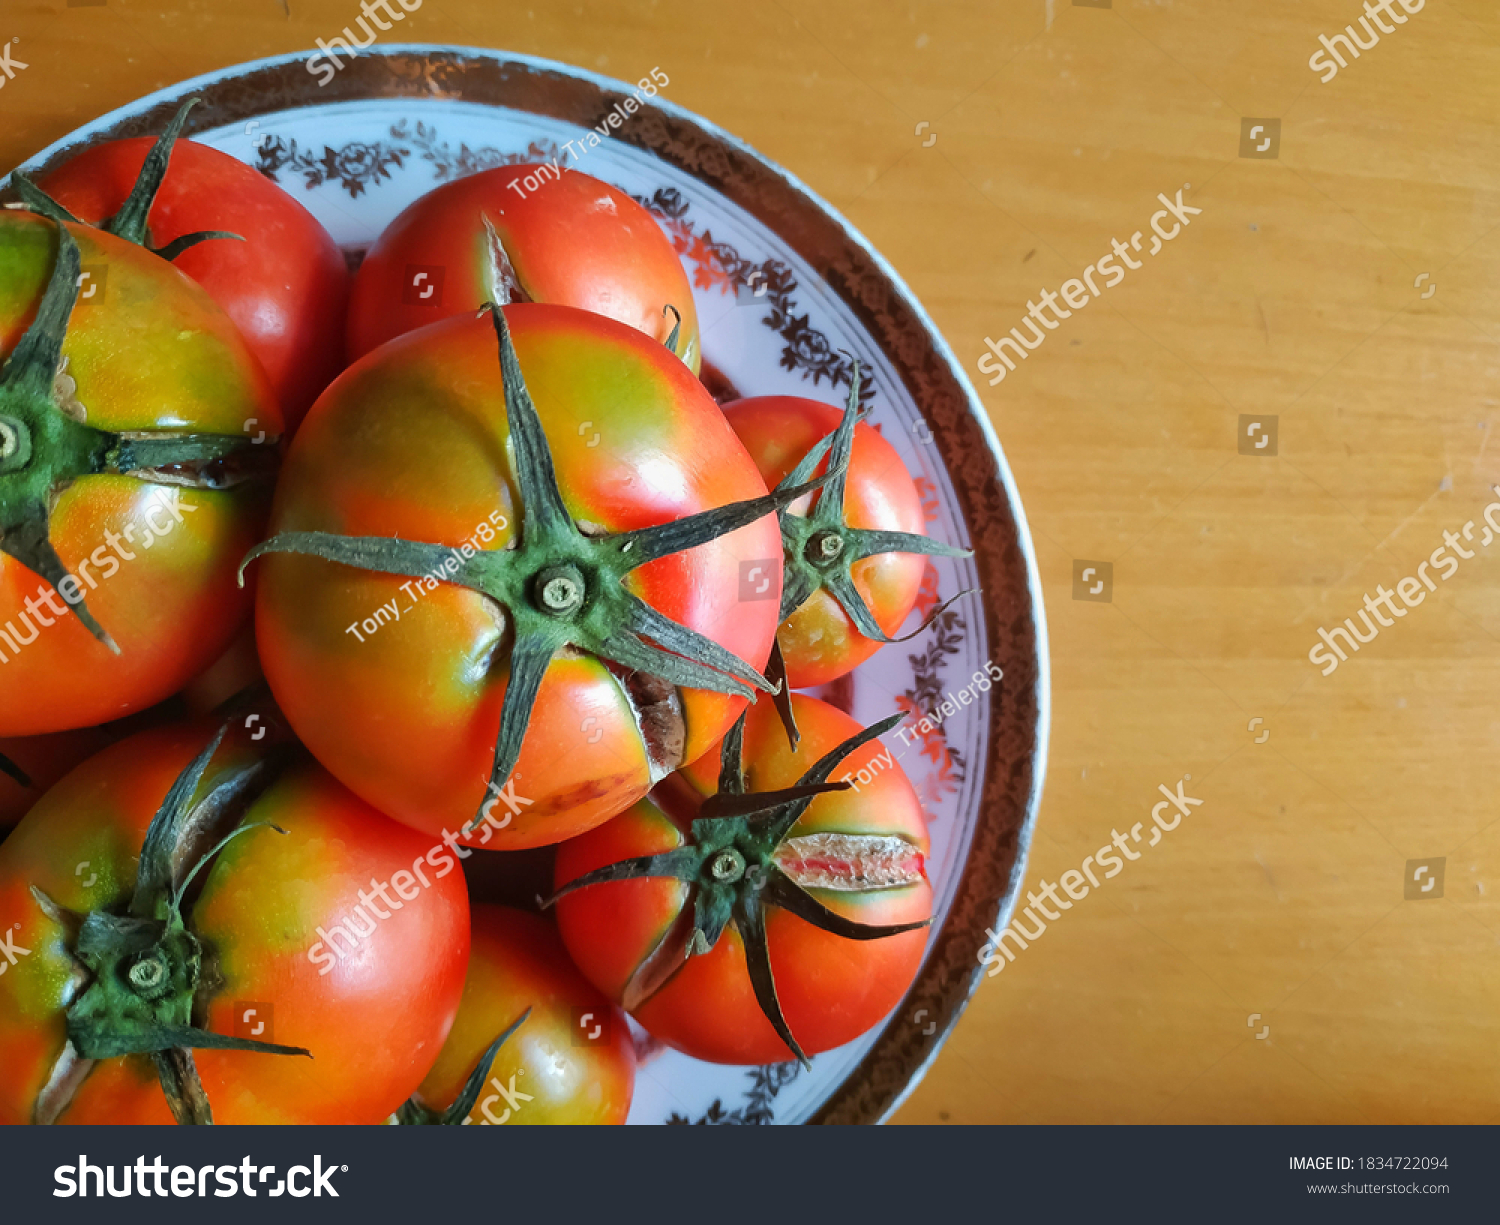 stock-photo-juicy-red-tomatoes-on-a-plat